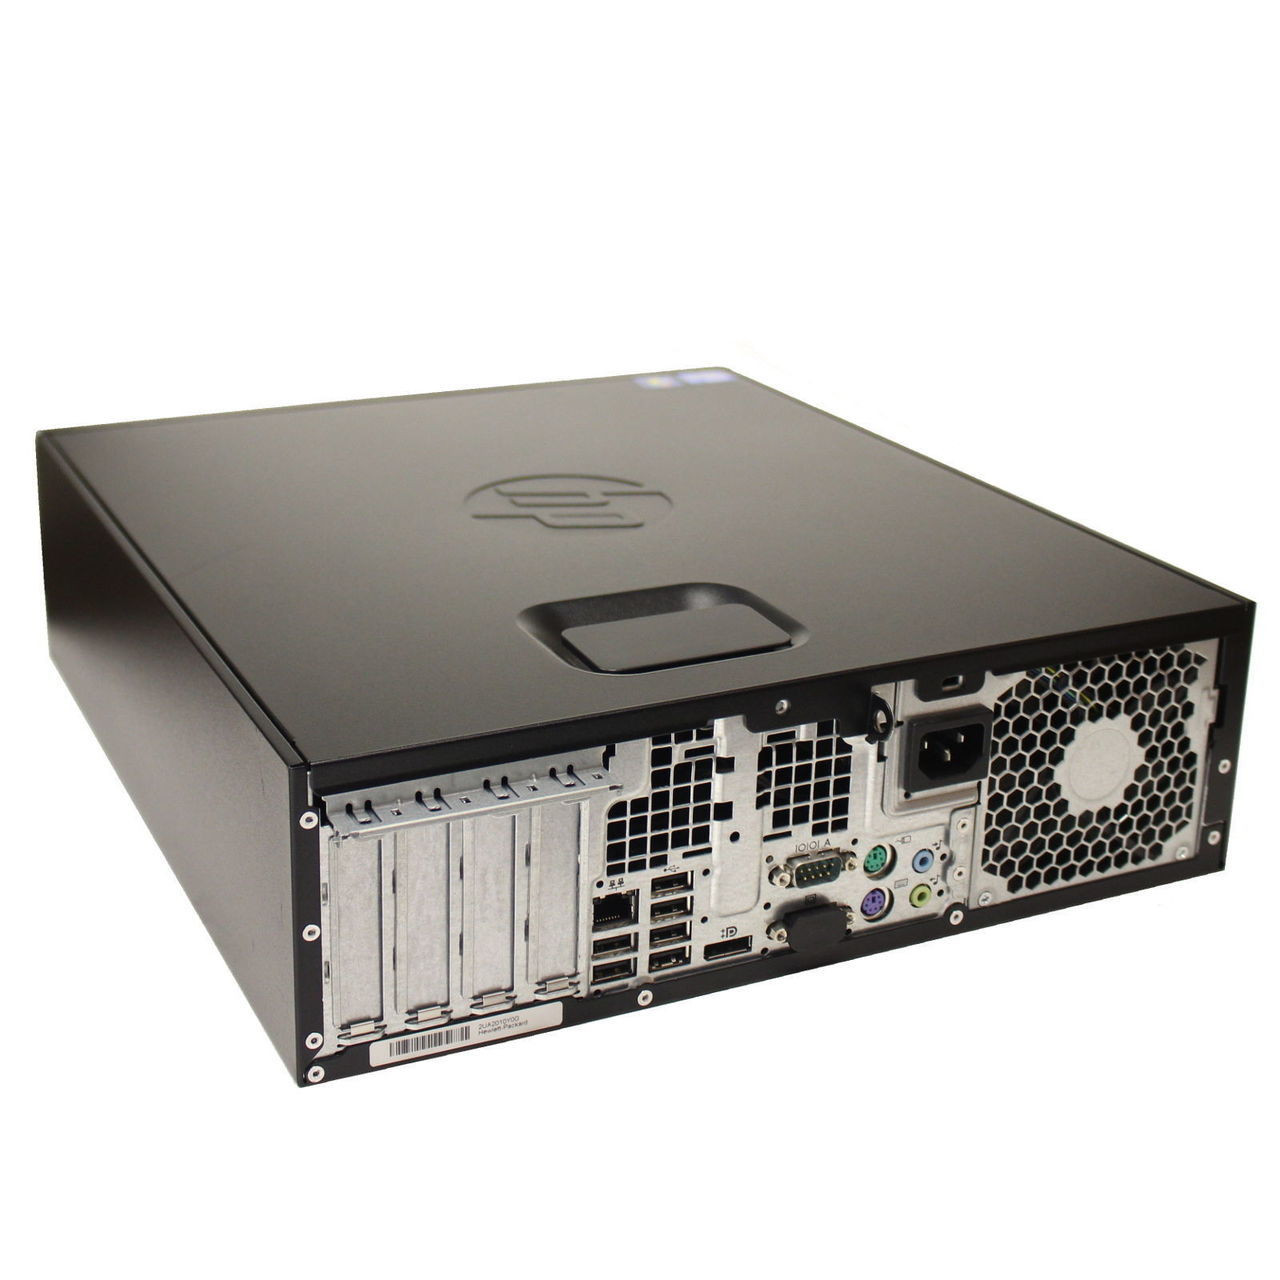 HP 4300 SFF - REAR SIDE VIEW